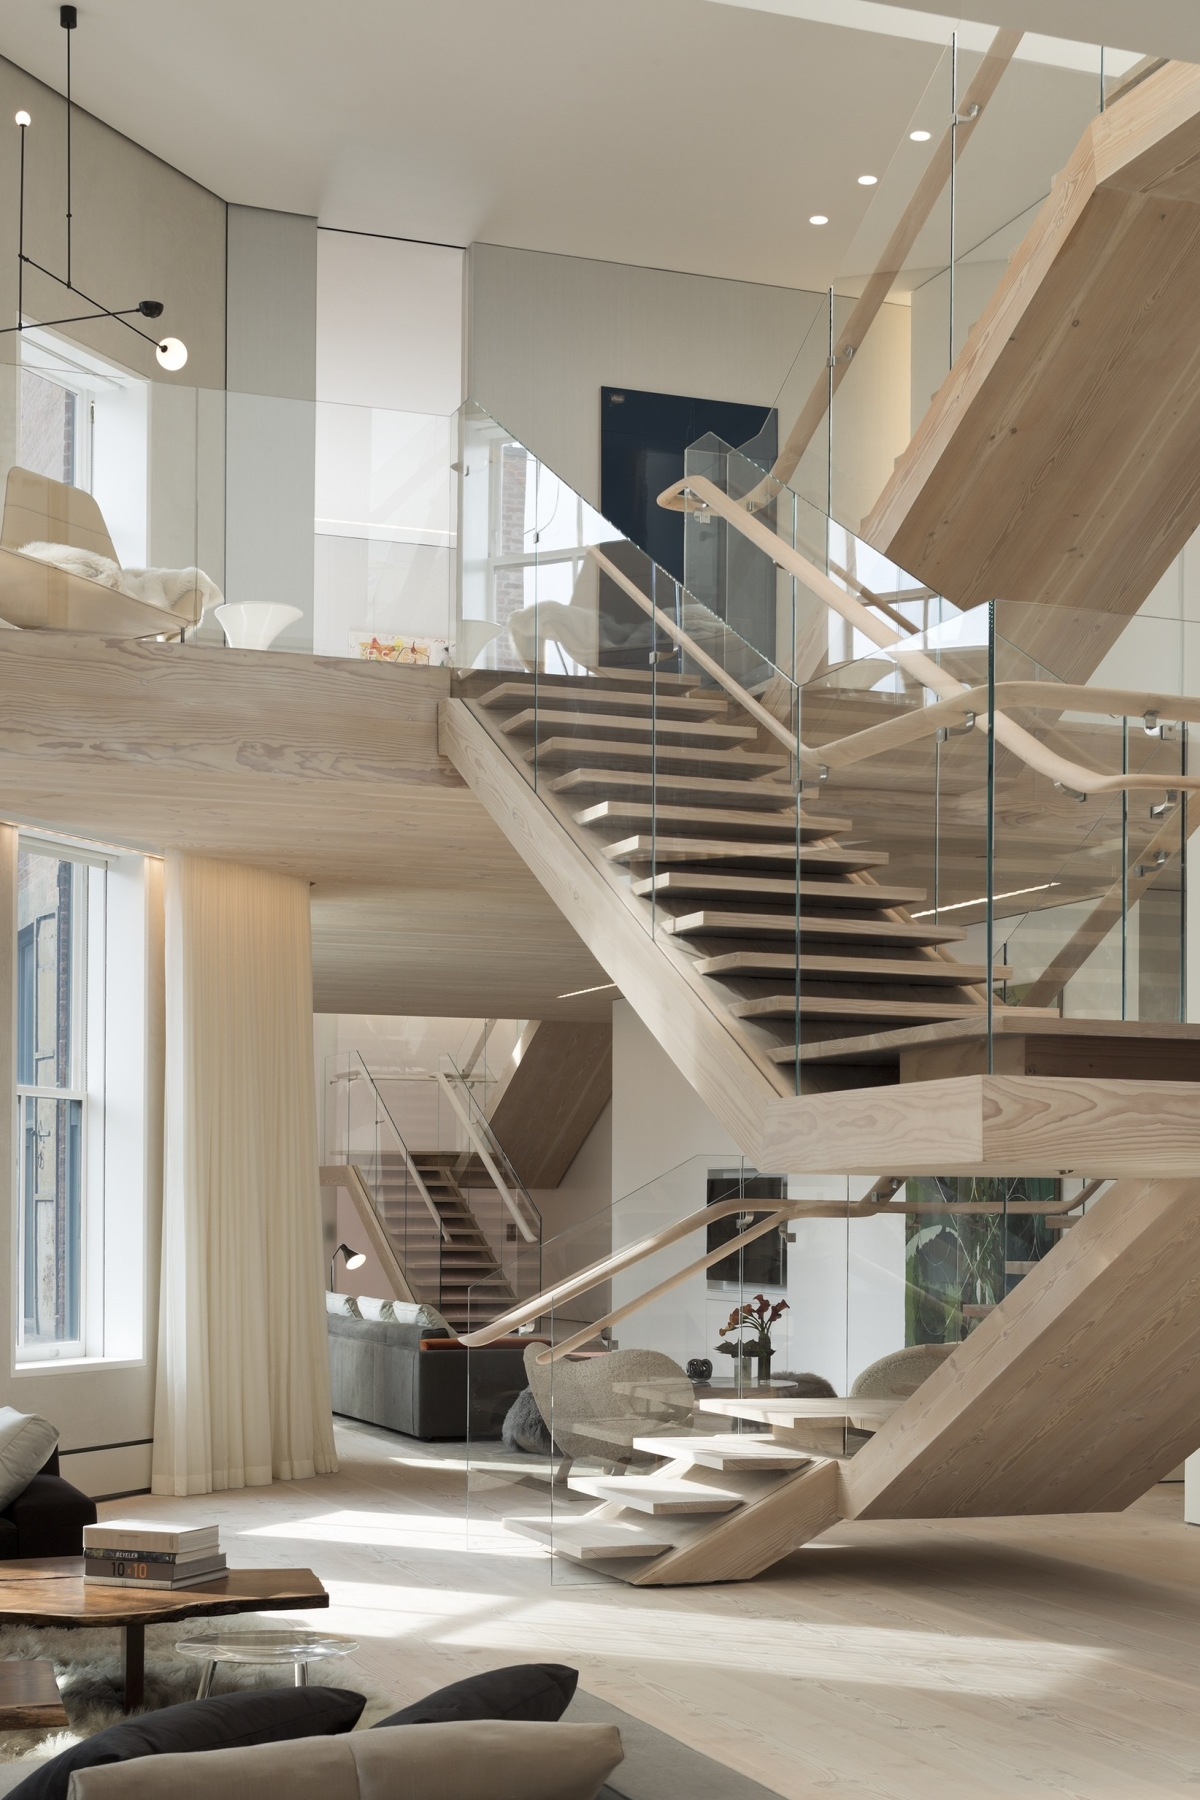 Stair Design Tumblr Collection #4